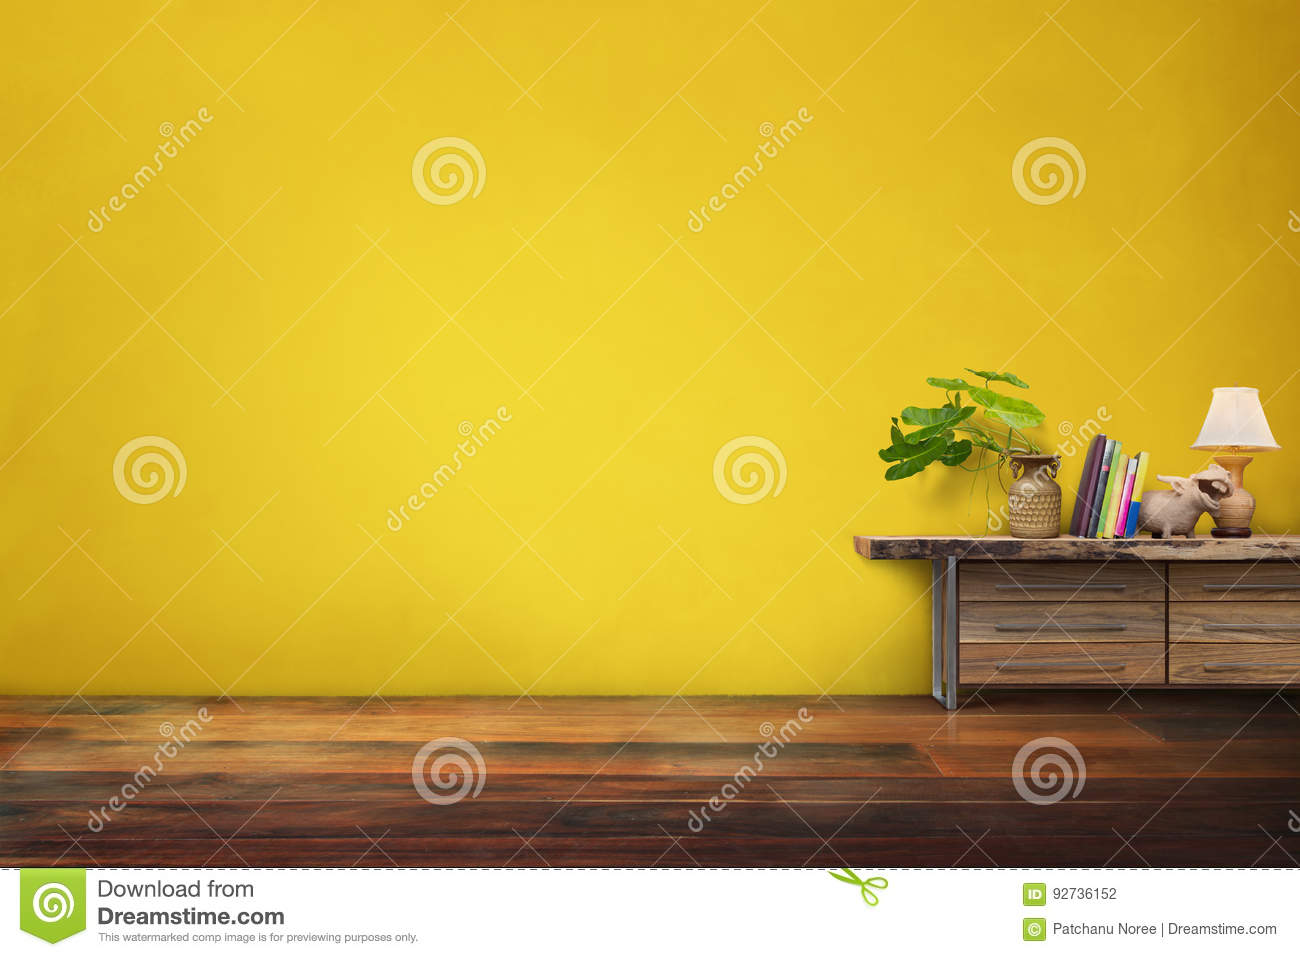 green plants pottery vase on drawer wooden in empty yellow vintage living room interior